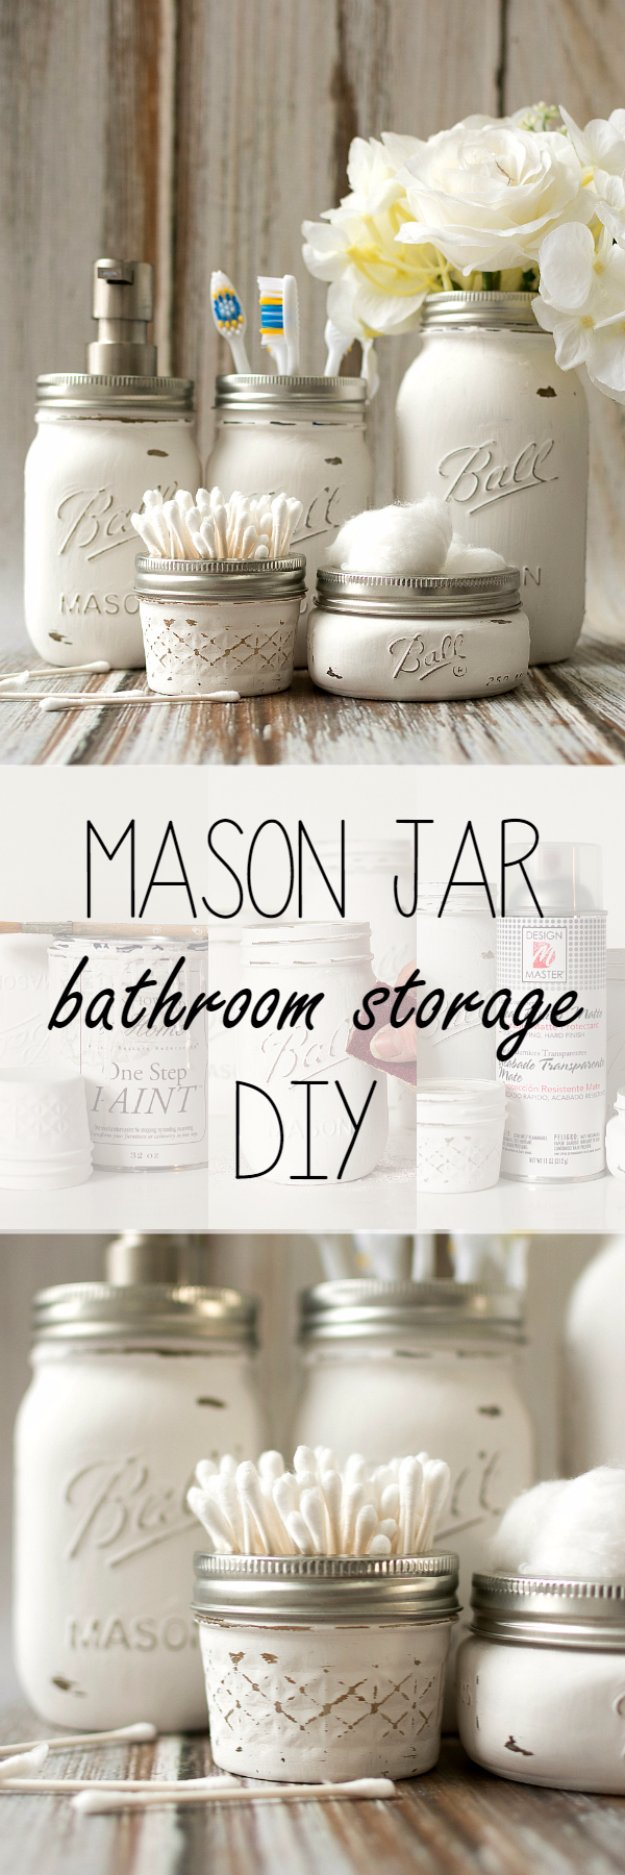 DIY Bathroom Decor Ideas   Mason Jar Bathroom Storage Accessories   Cool Do  It Yourself Bath